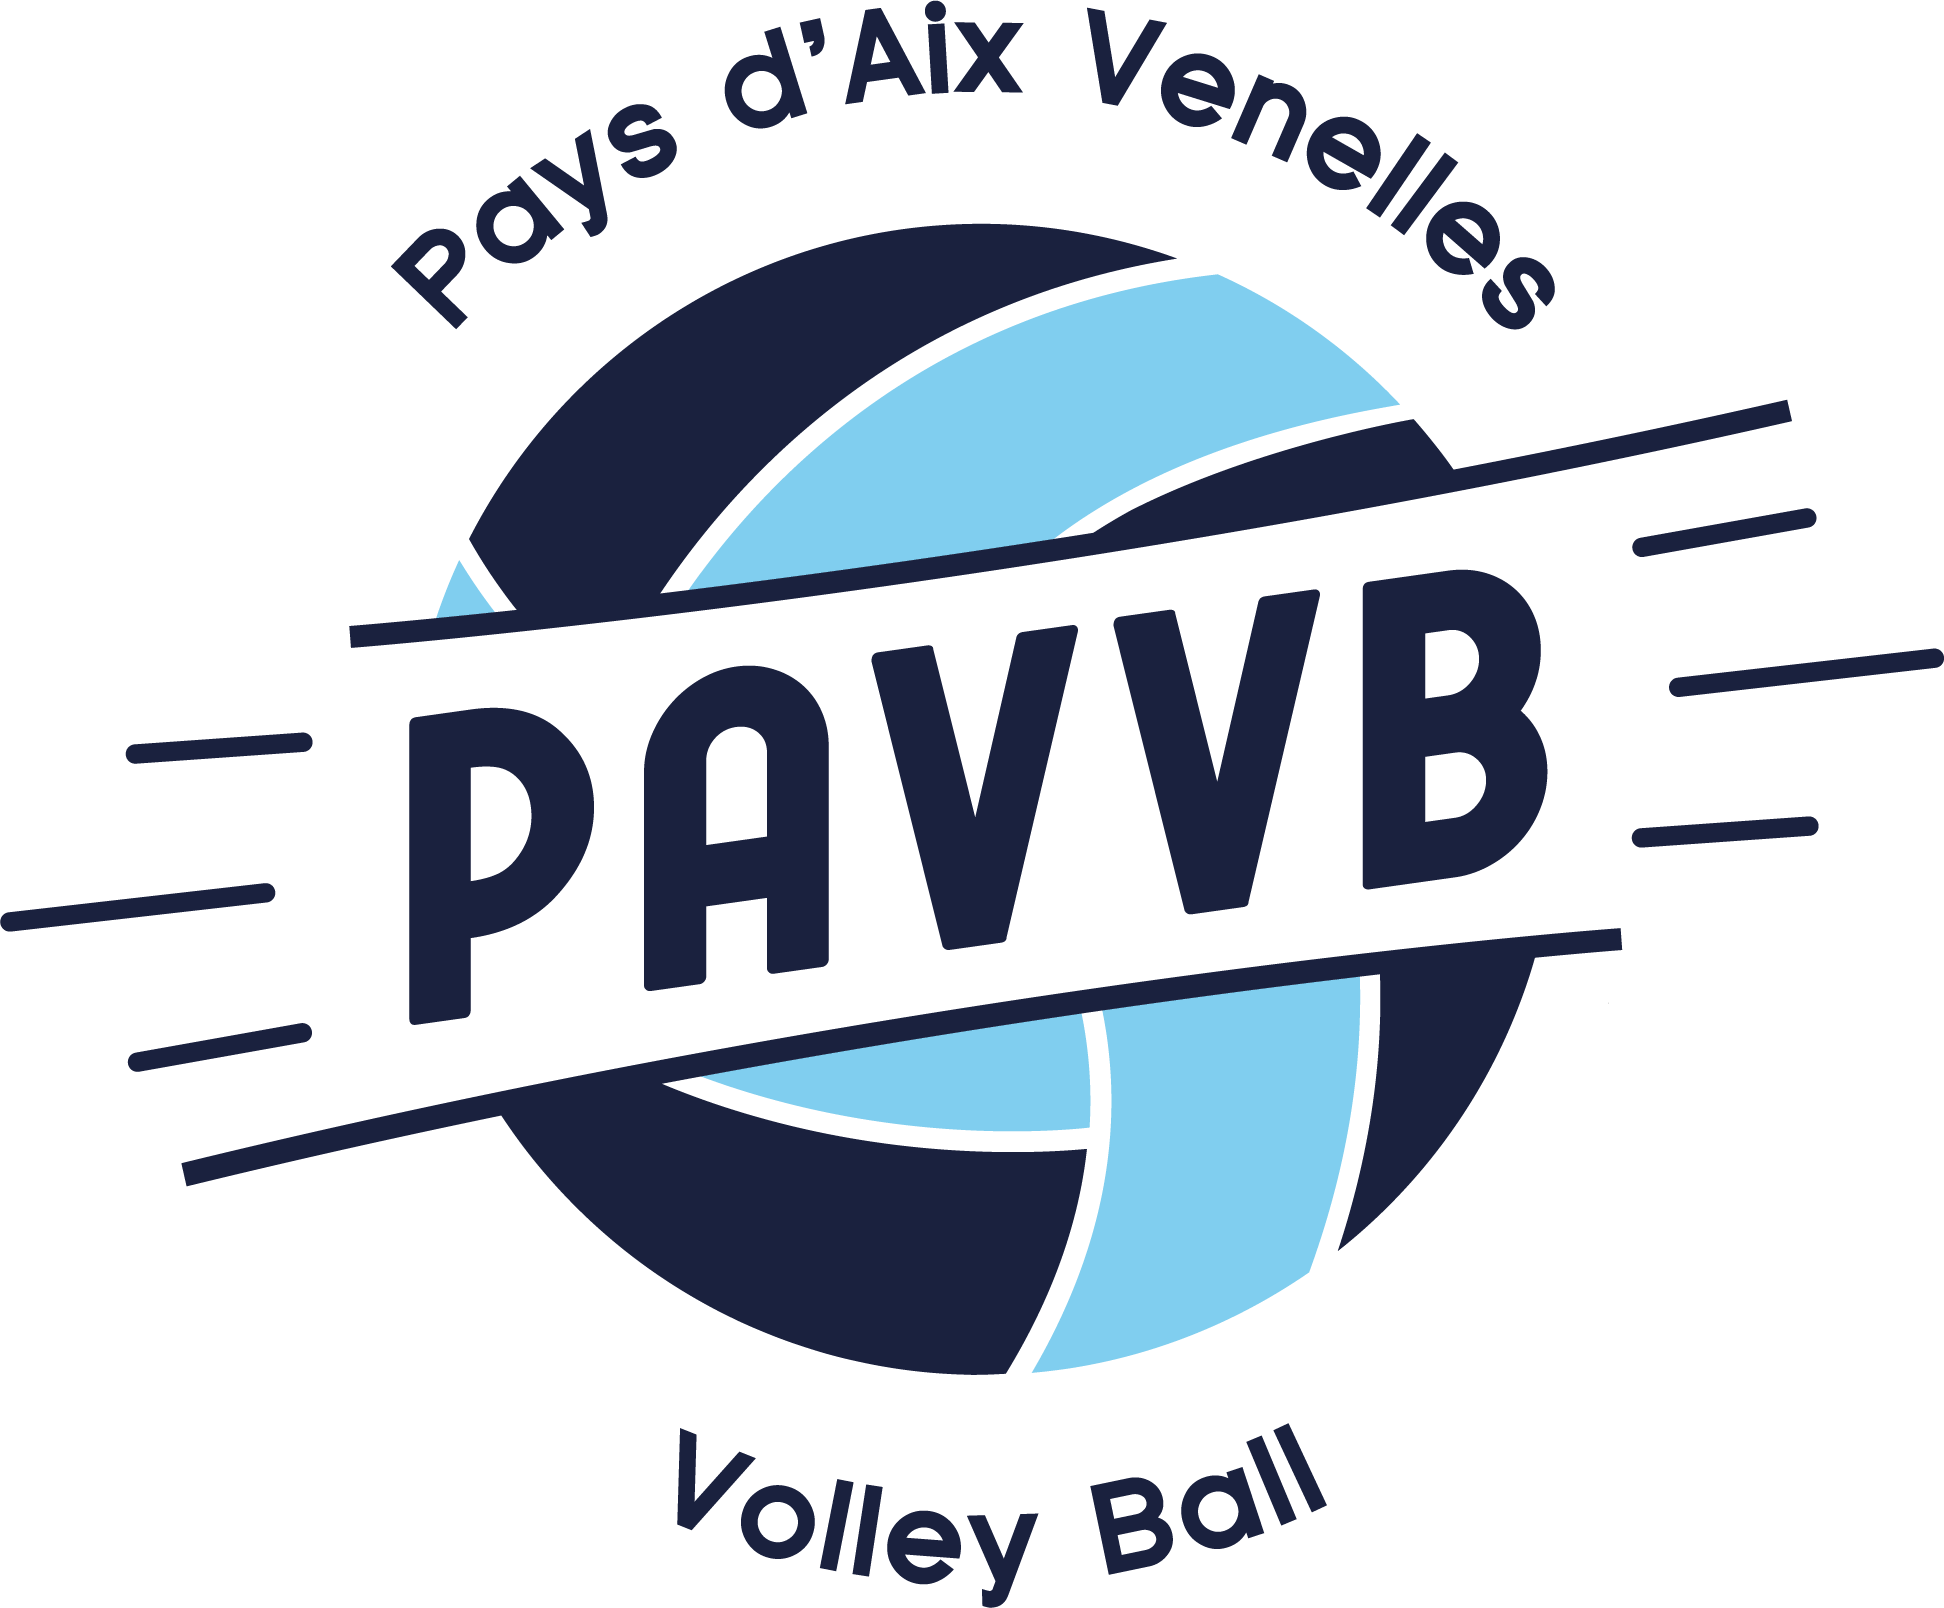 FRANCE - Pays d'Aix Venelles VolleyBall<br/>VolleyBall